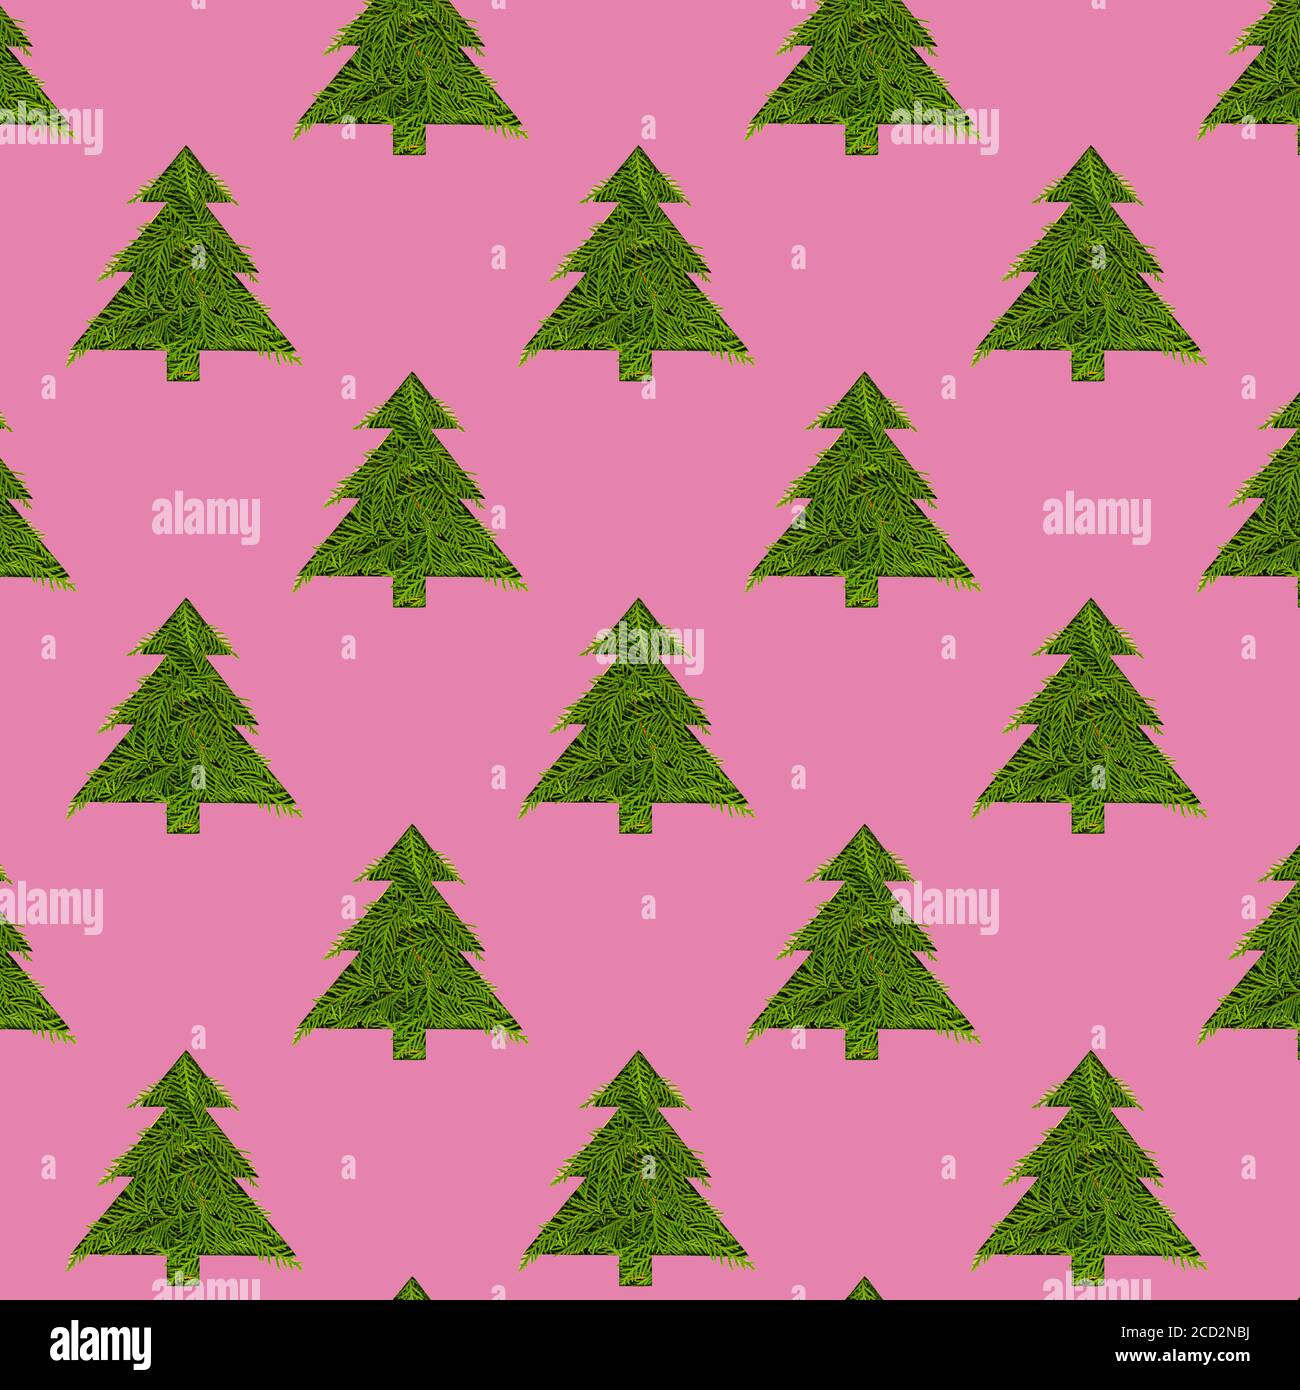 Seamless Pattern With Green Christmas Trees On A Pink Background Minimal Composition Pattern Background Of Christmas Trees New Year And Christmas Co Stock Photo Alamy